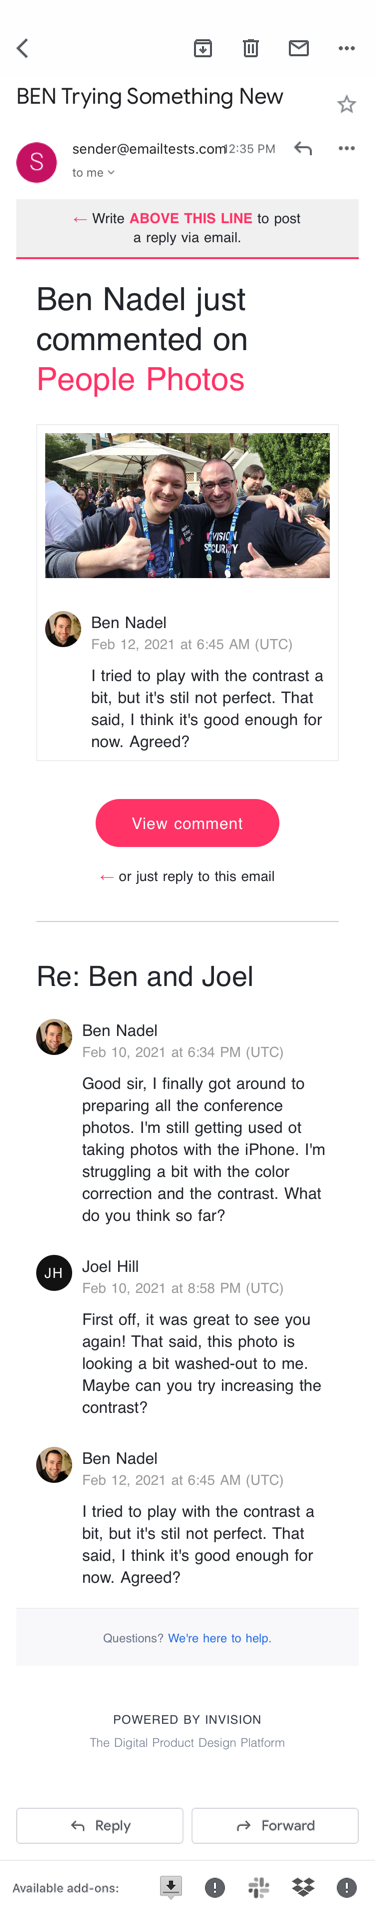 Email rendering in Gmail on iOS 13.